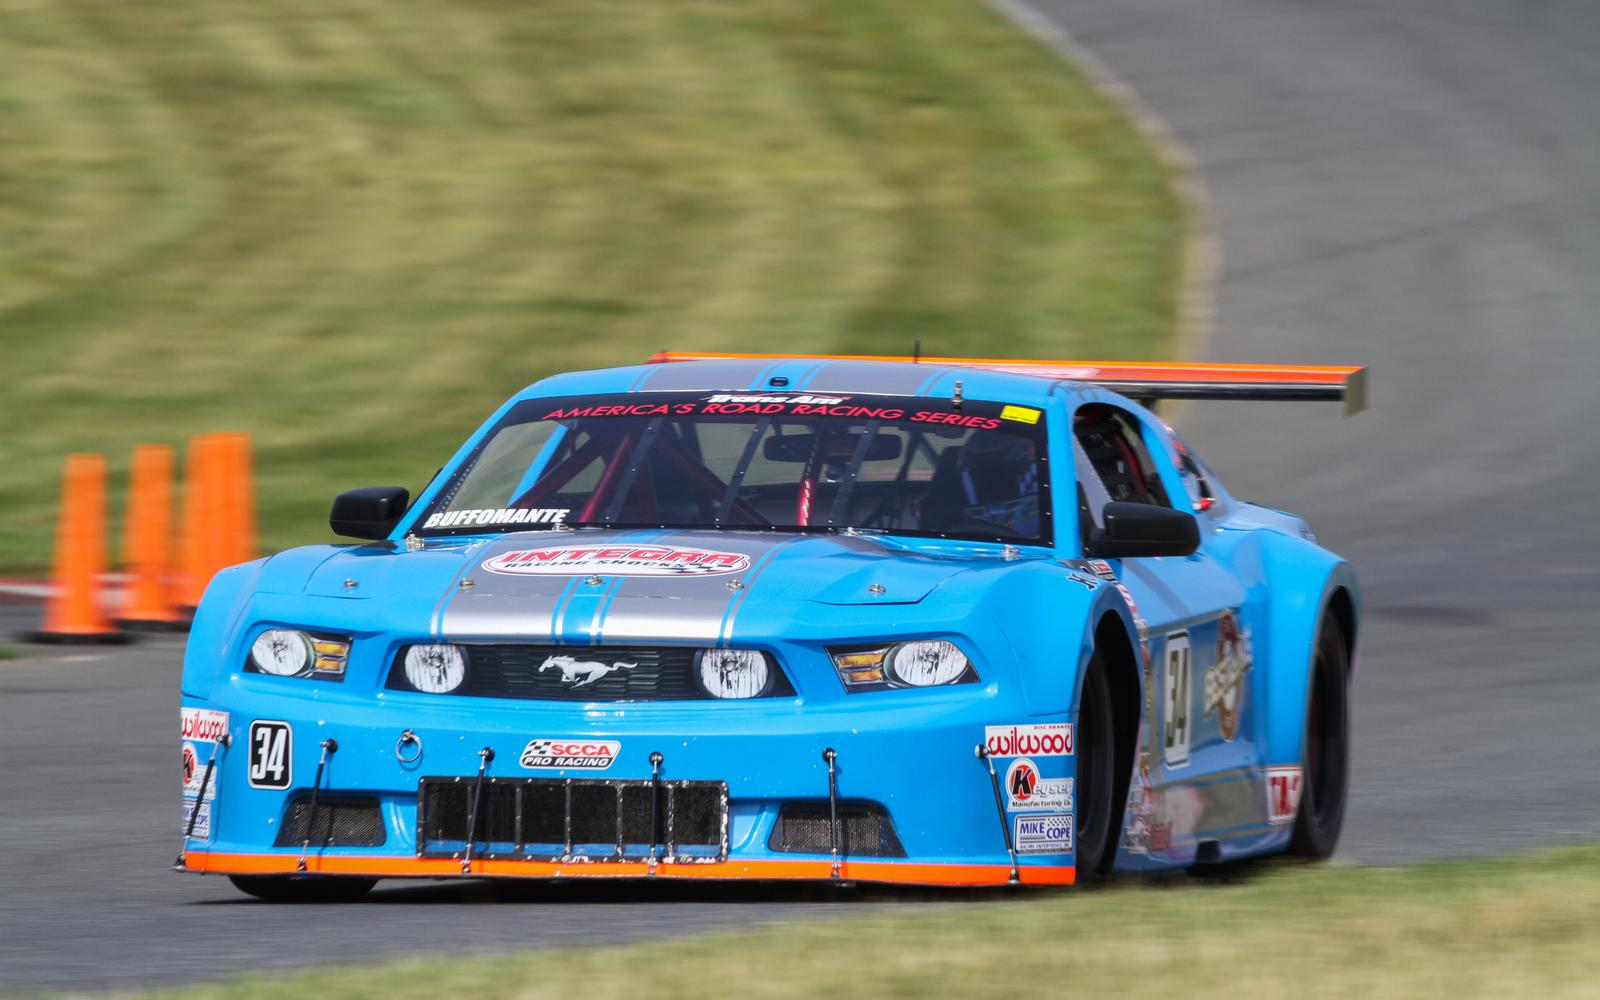 Mike Cope ready to rebound at Brainerd International Raceway